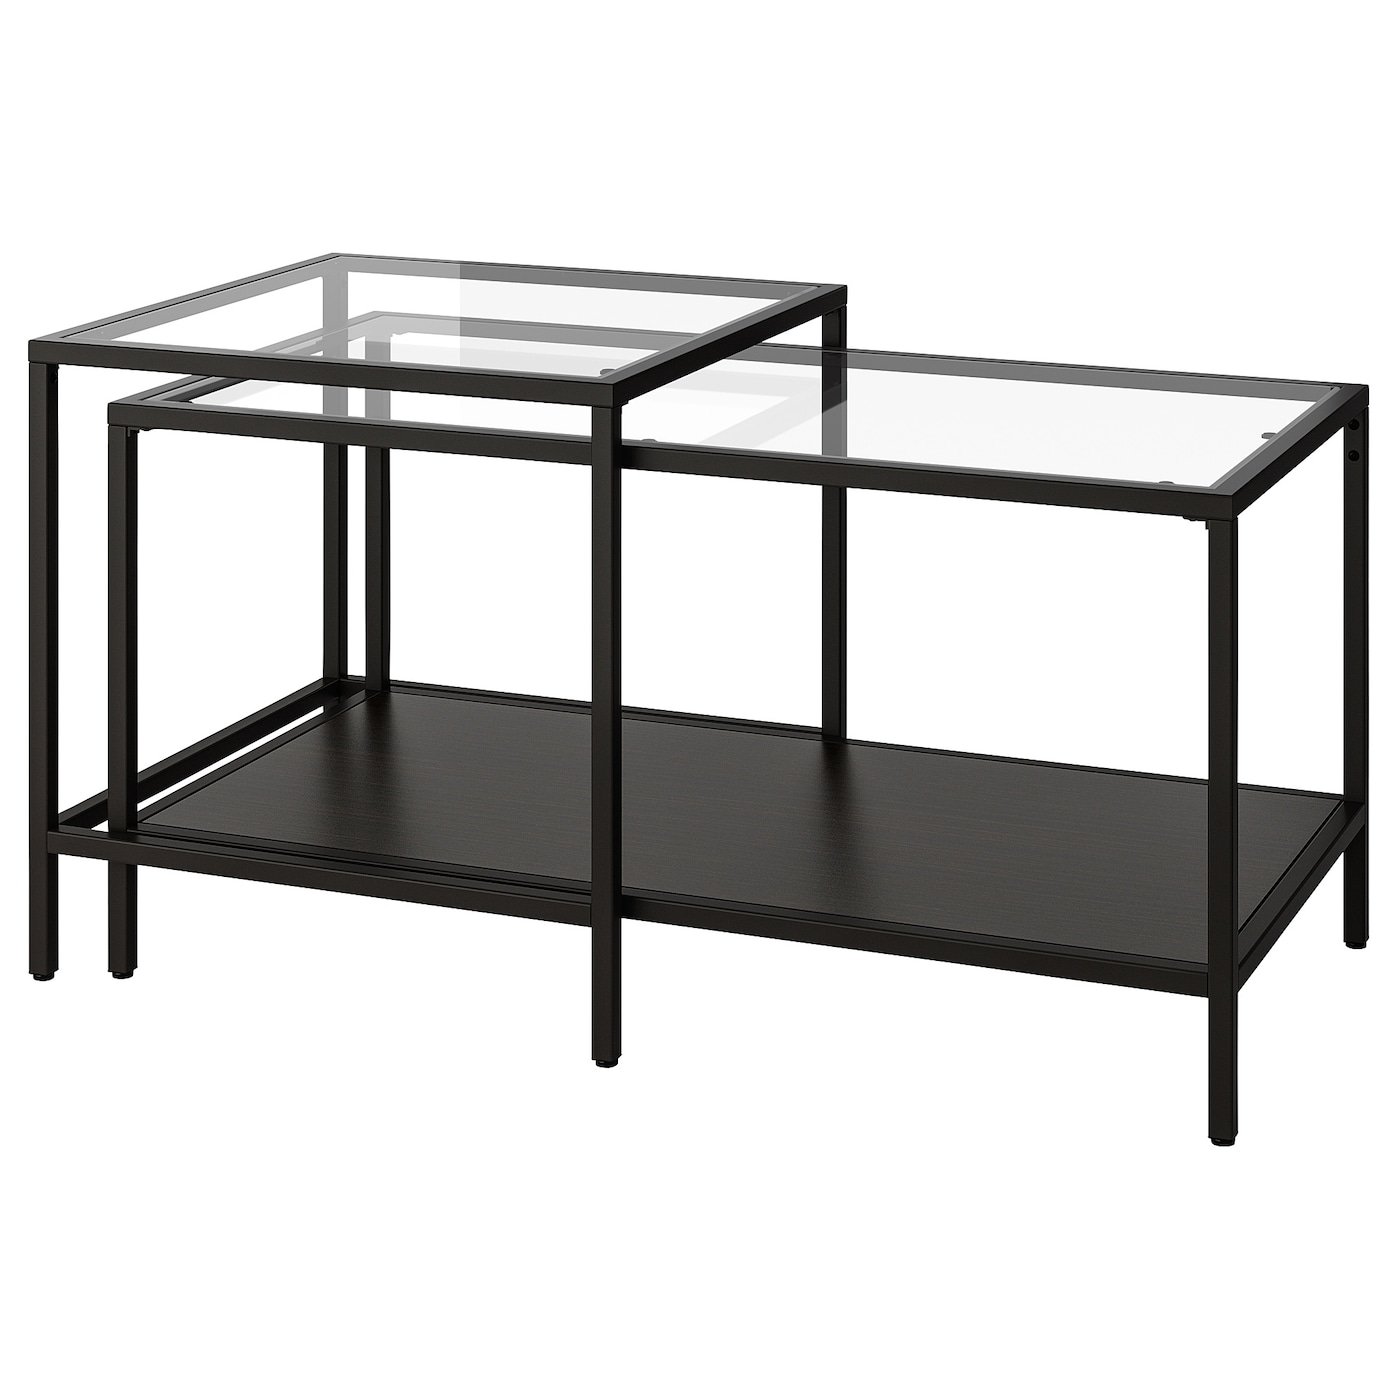 - VITTSJÖ Nesting Tables, Set Of 2, Black-brown, Glass, 35 3/8x19 5